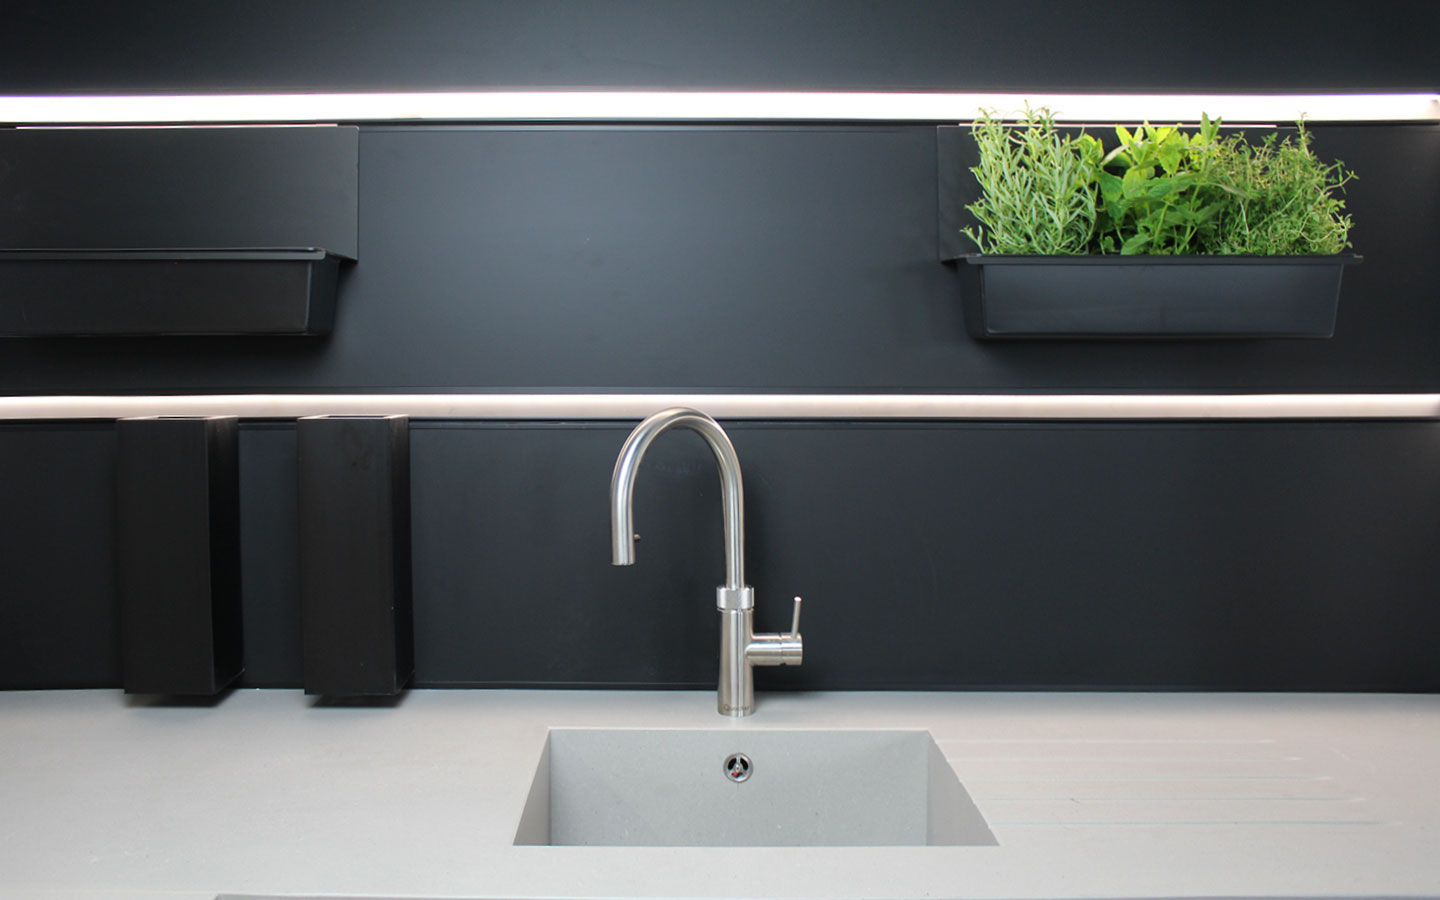 Quartz clad 1810 Axis sink matching with worktop